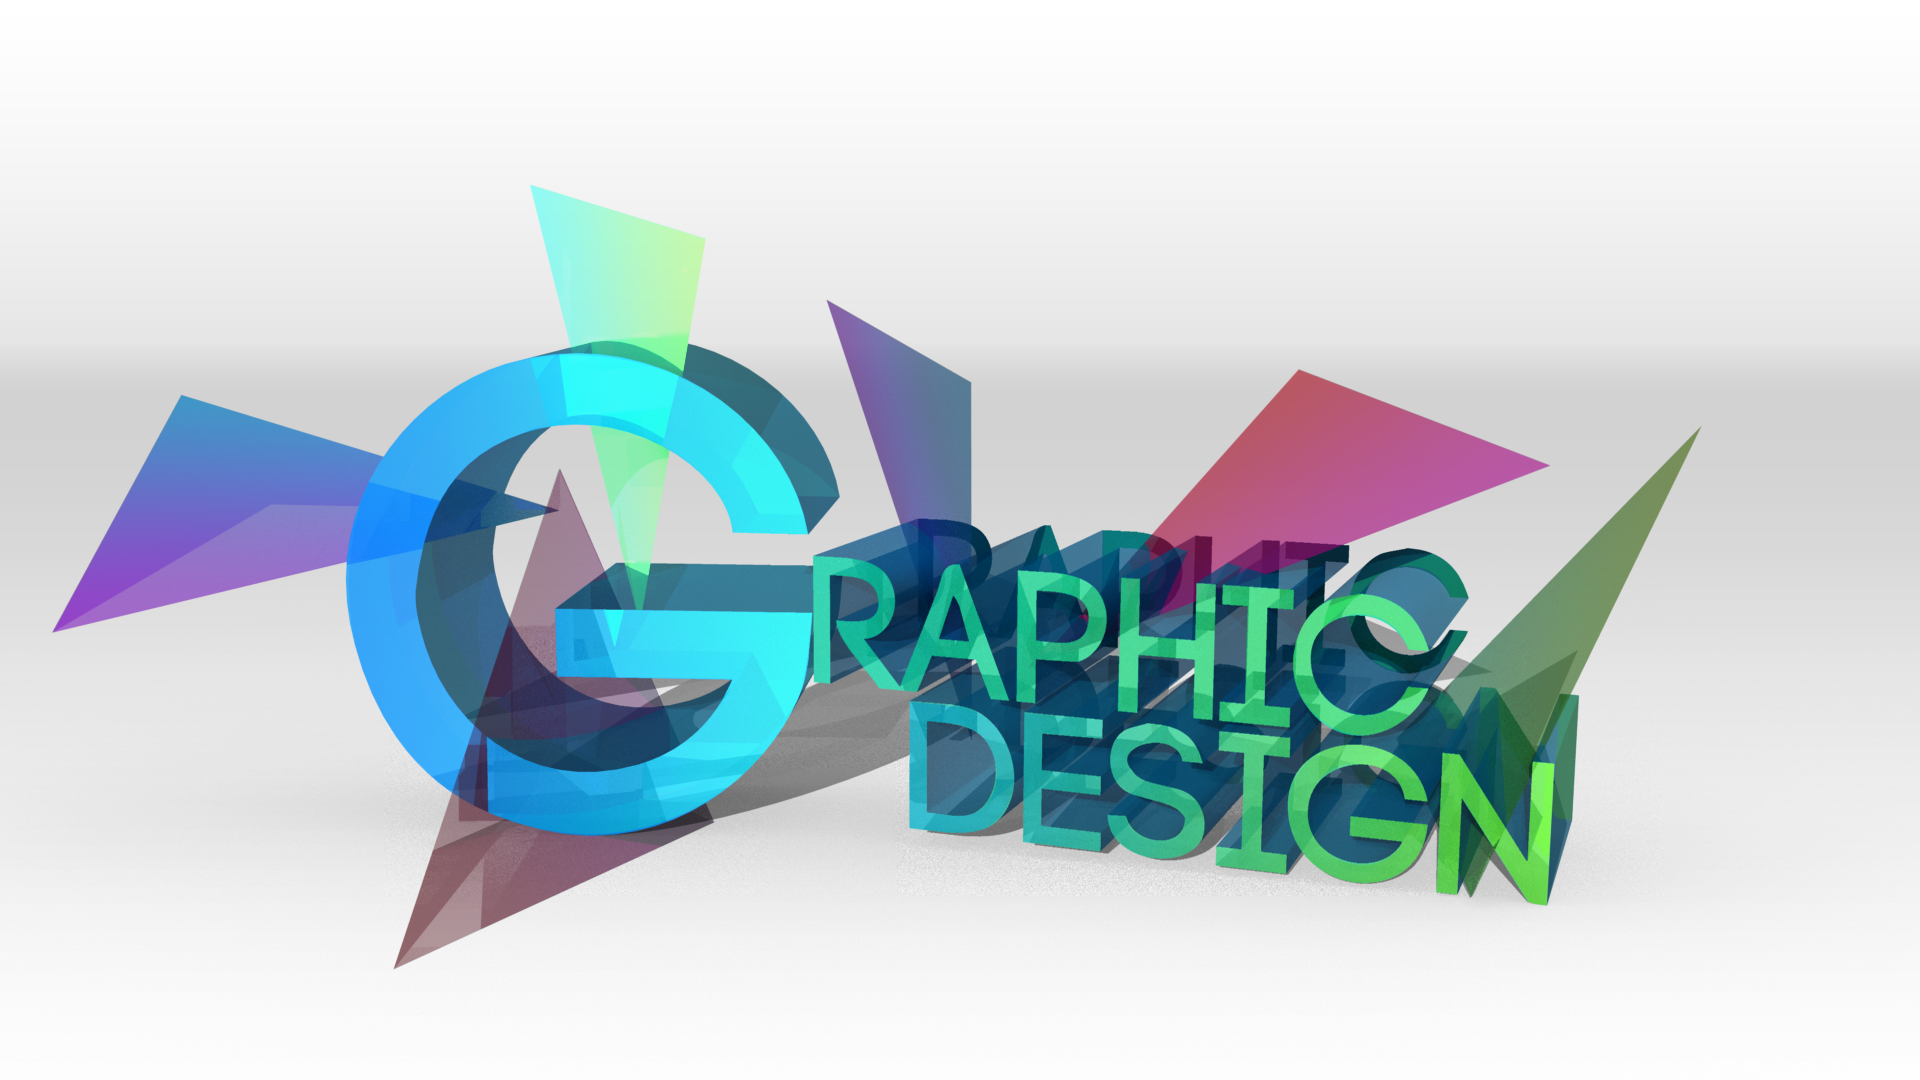 3D Graphic Design text by veritas-night on DeviantArt